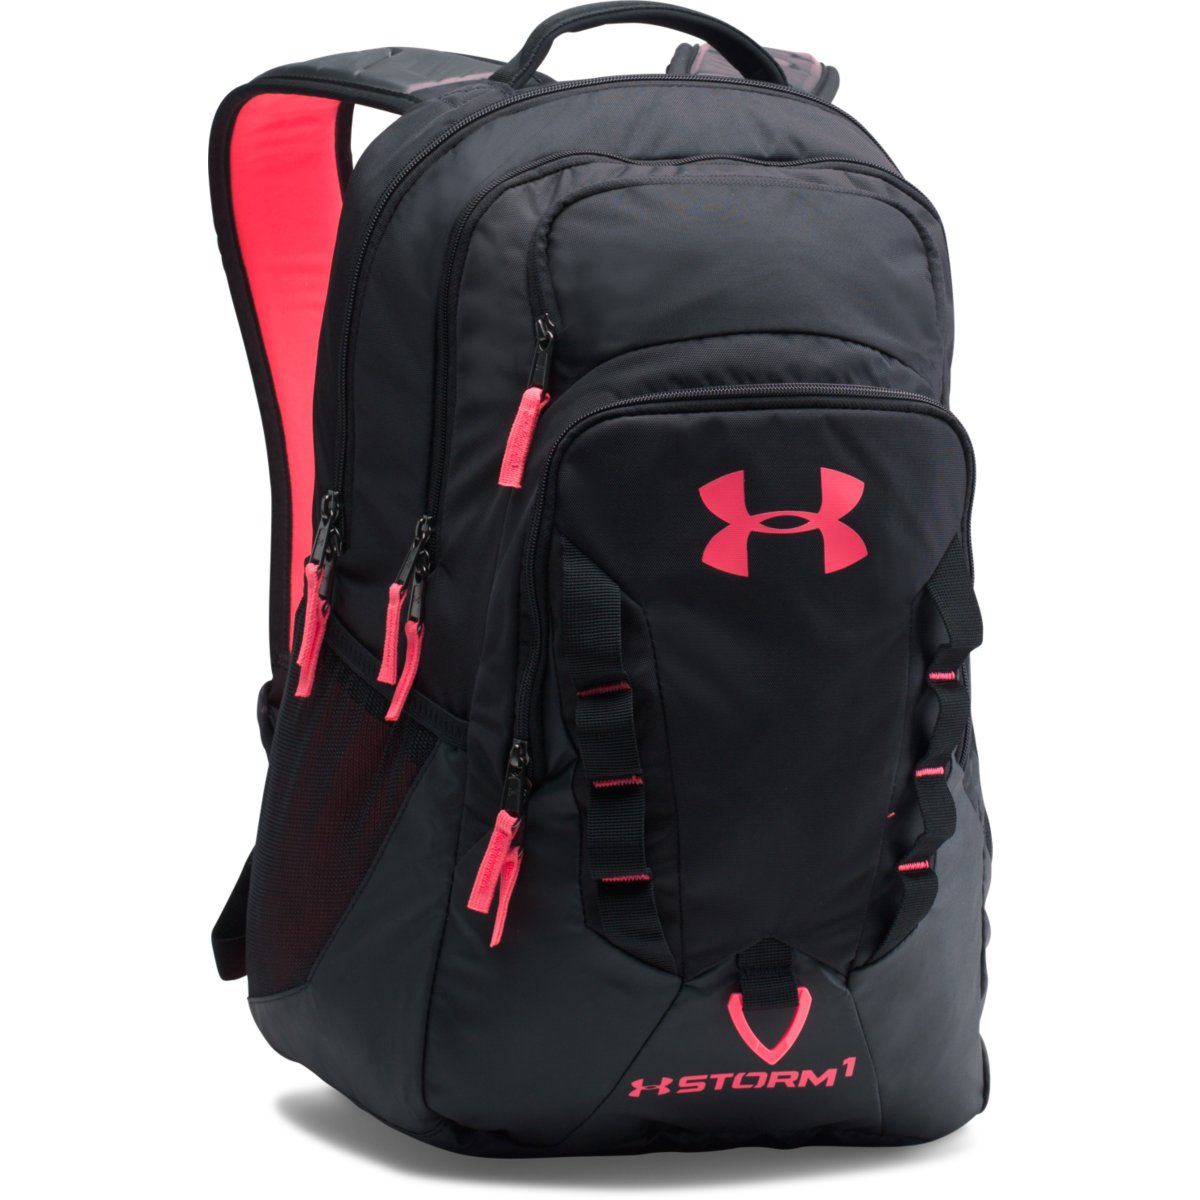 Under Armour Storm Recruit Backpack | eBay